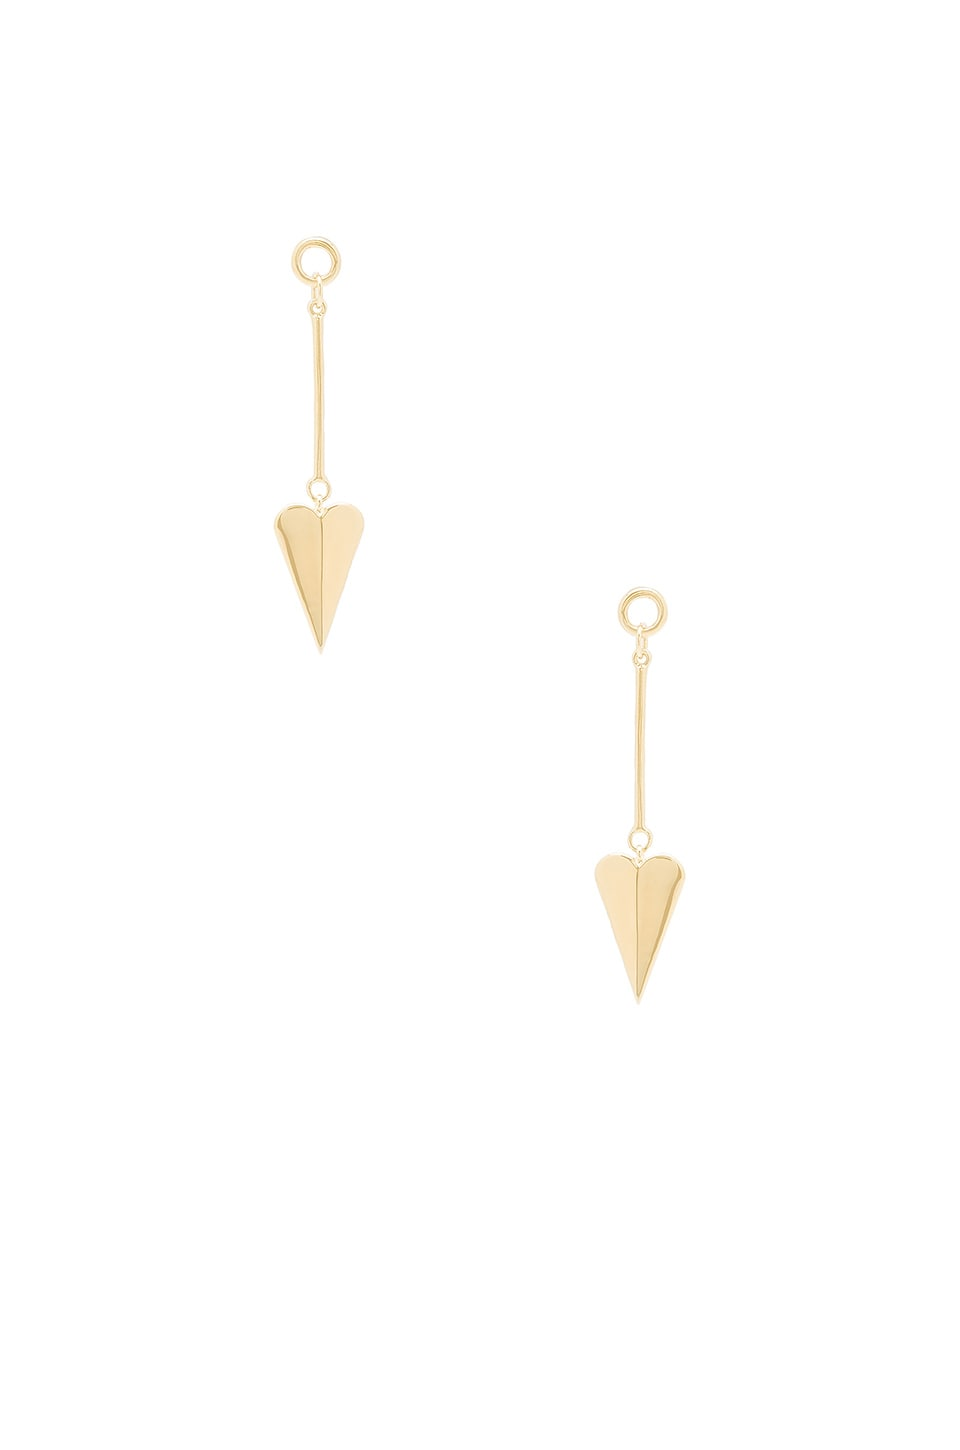 Elizabeth and James Bronte Earrings in Yellow Gold